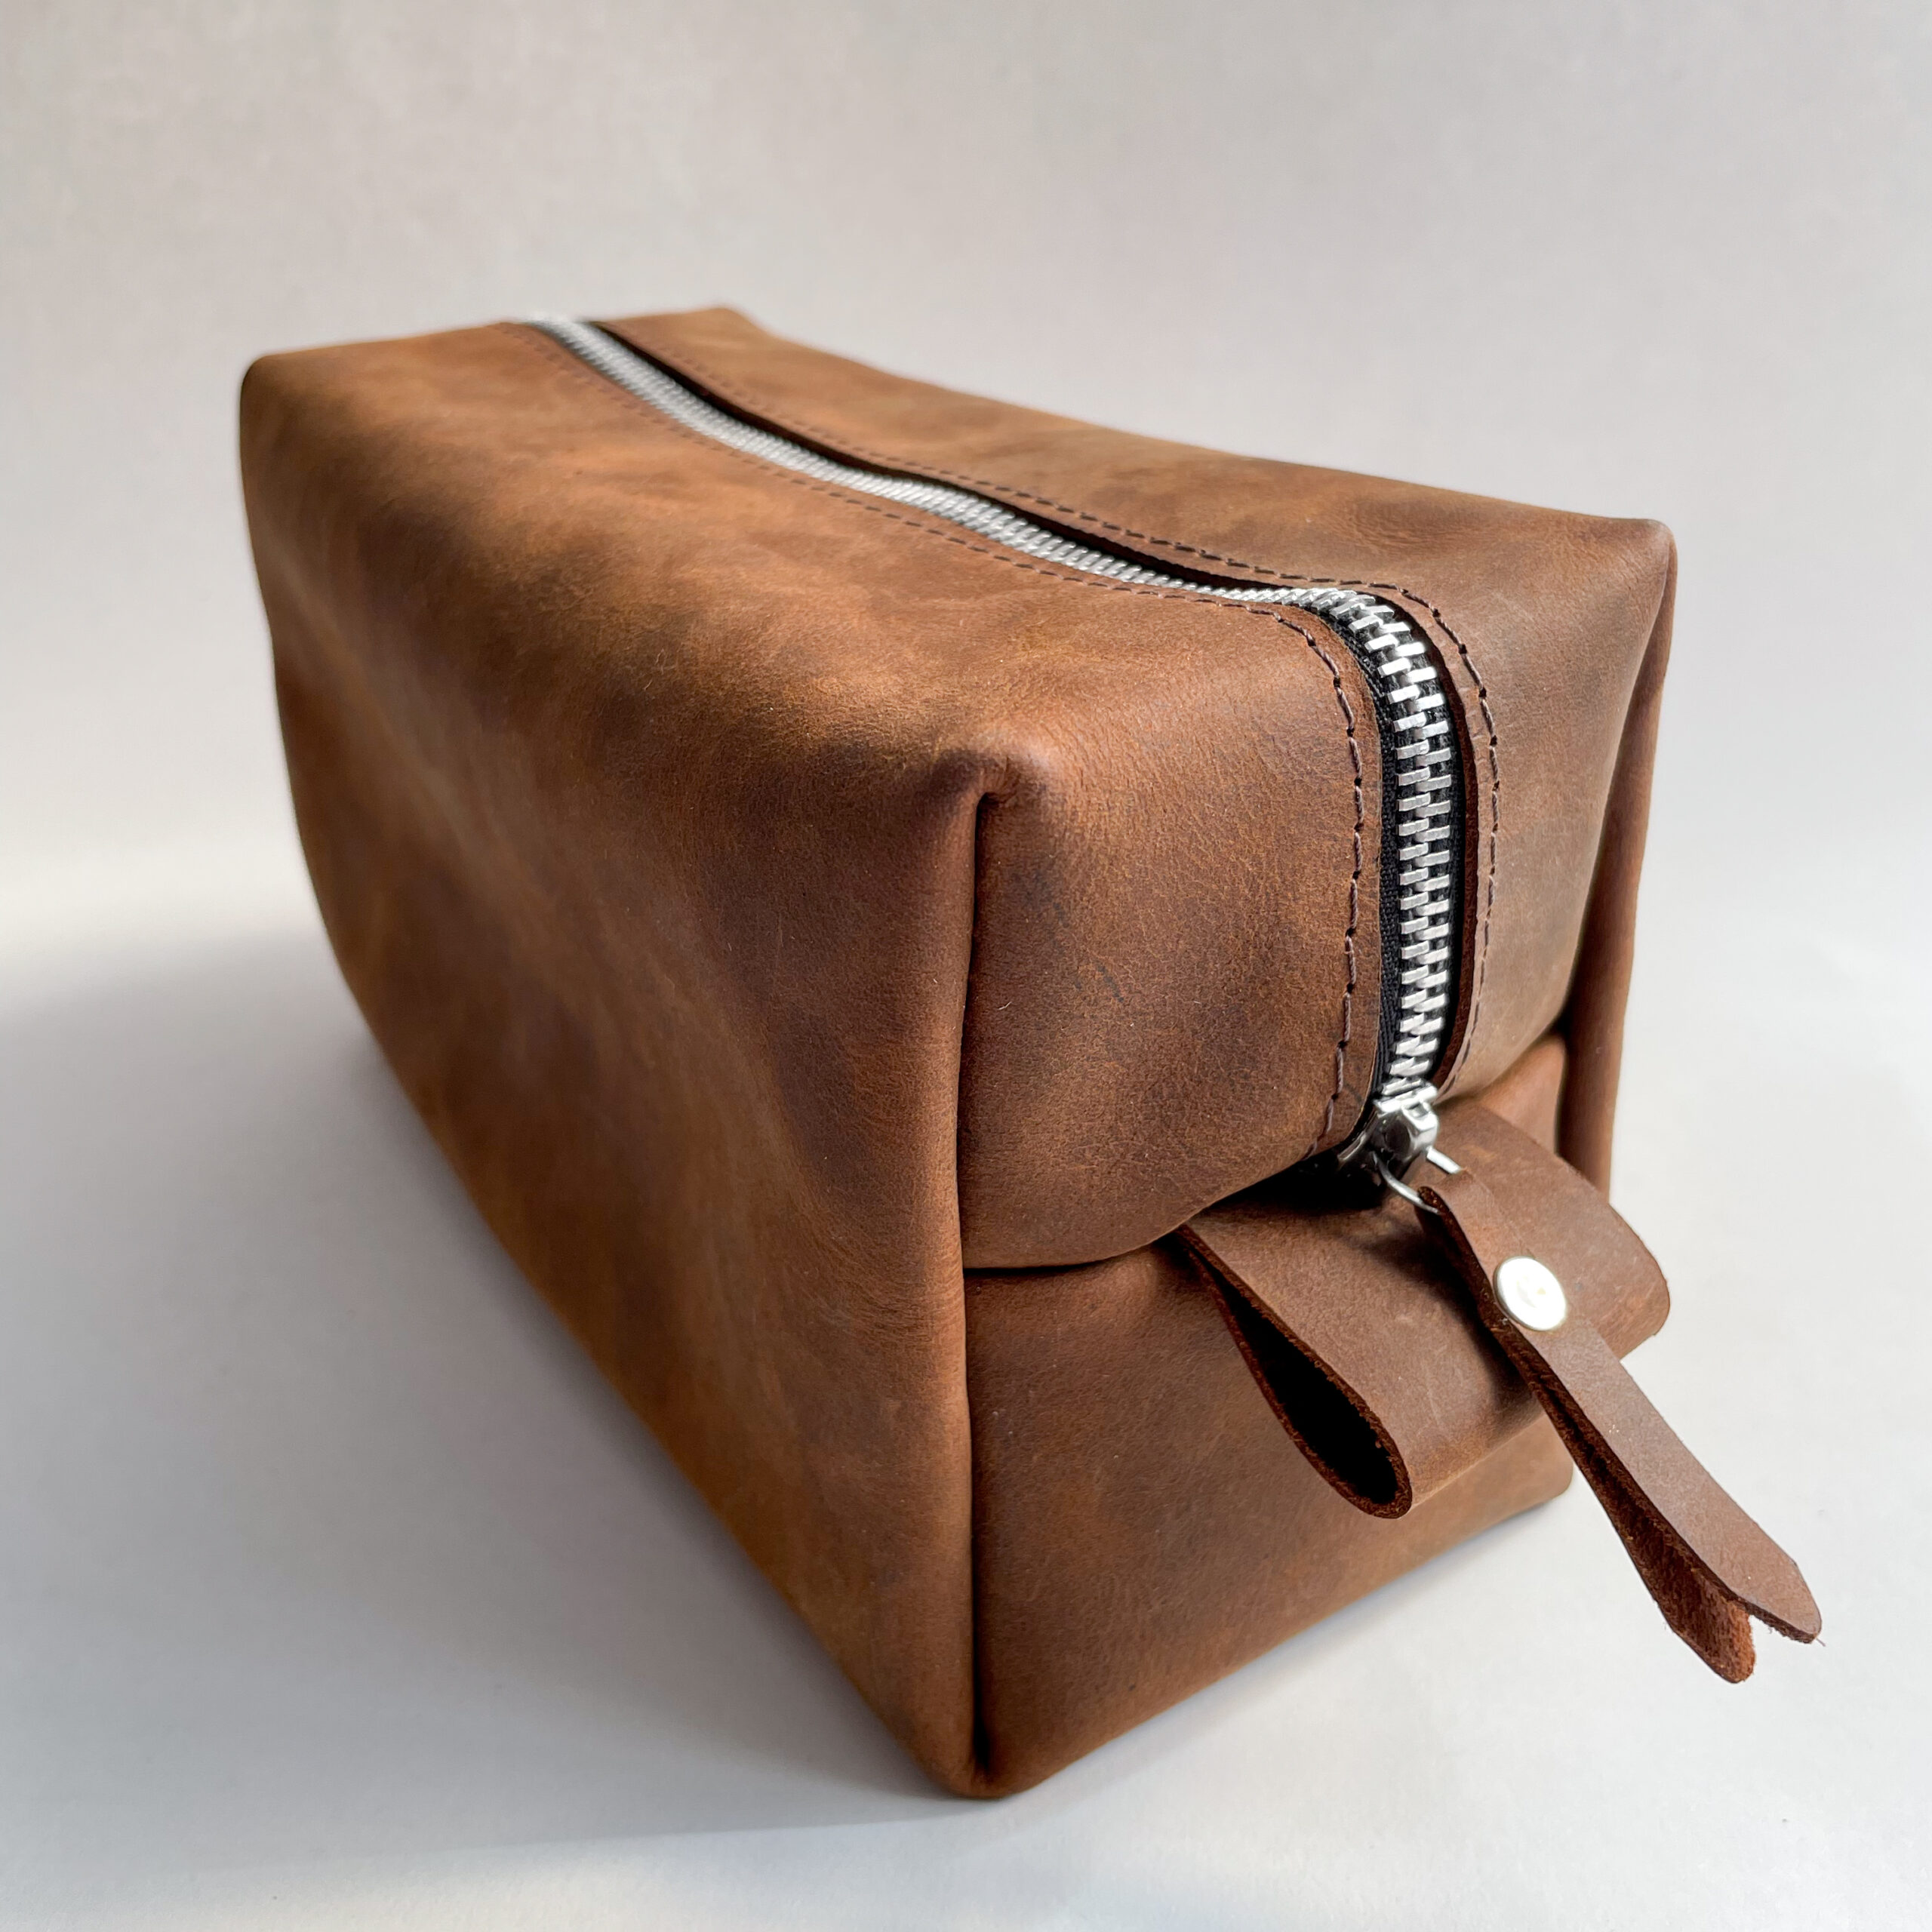 A brown leather dopp kit